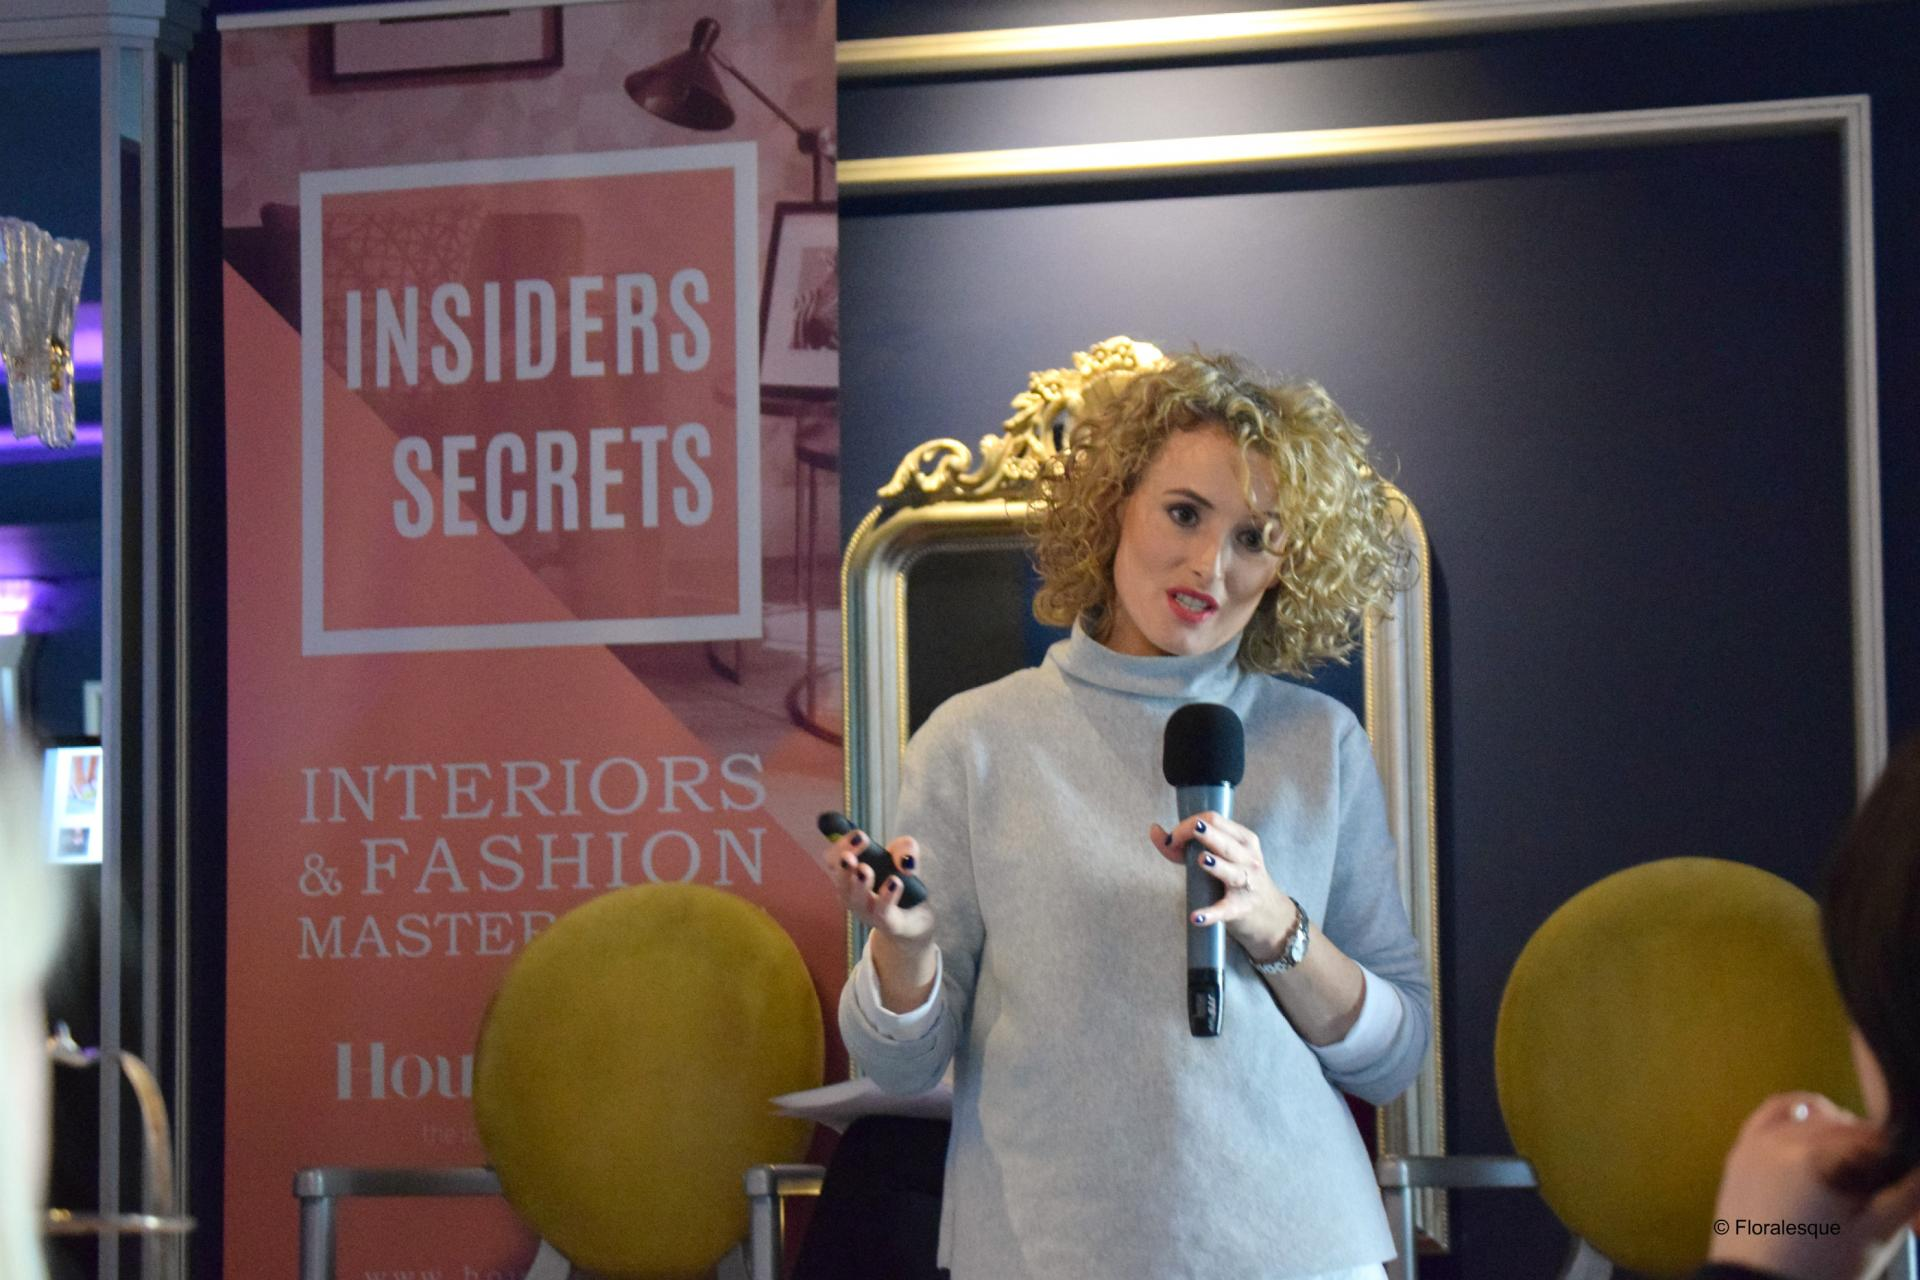 Insiders Secrets - Interiors & Design Masterclass | House Edit